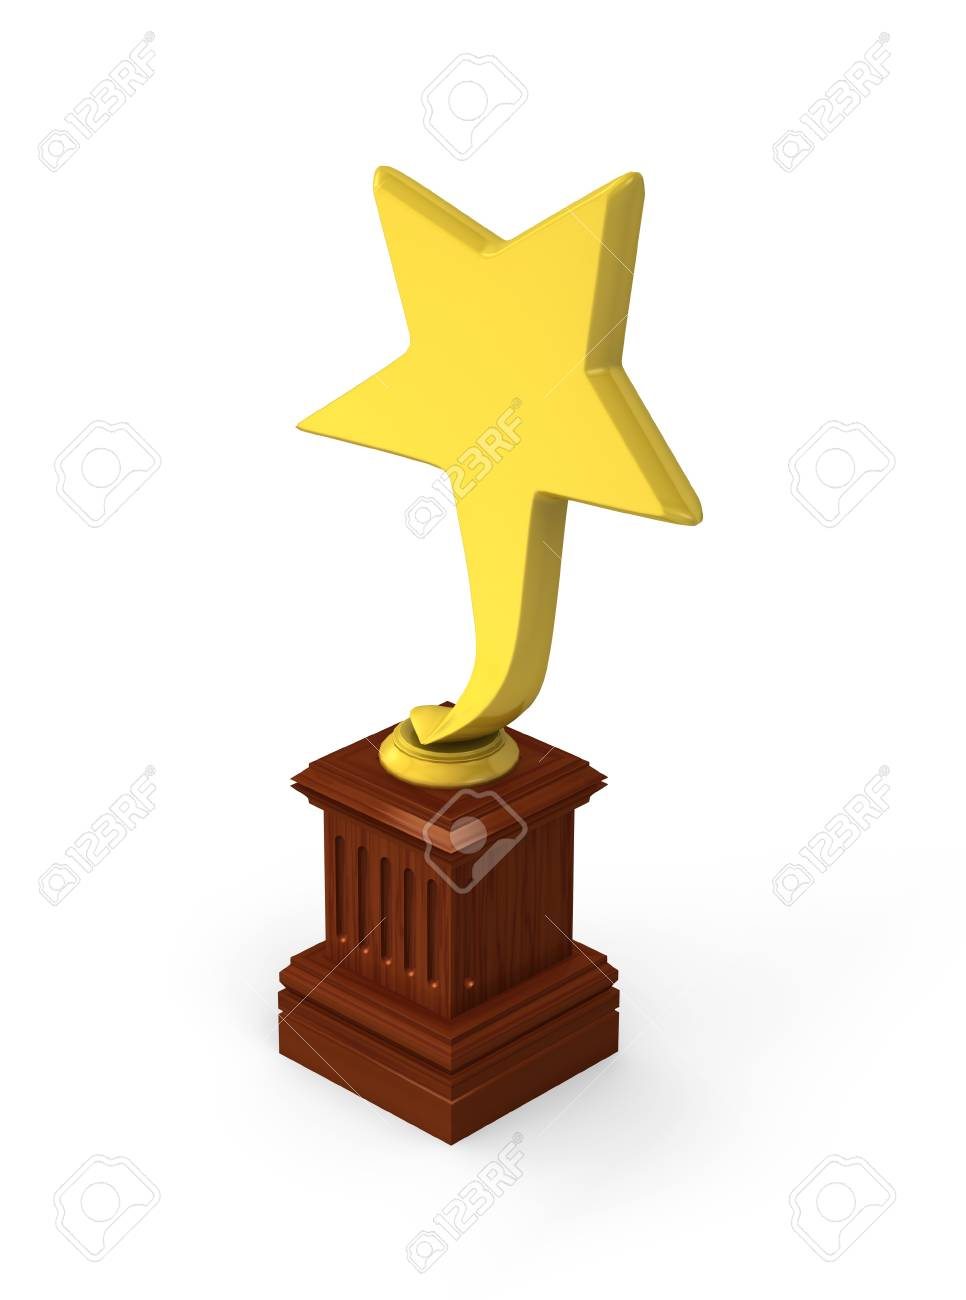 Golden star award isolated on the white background Stock Photo - 14652524